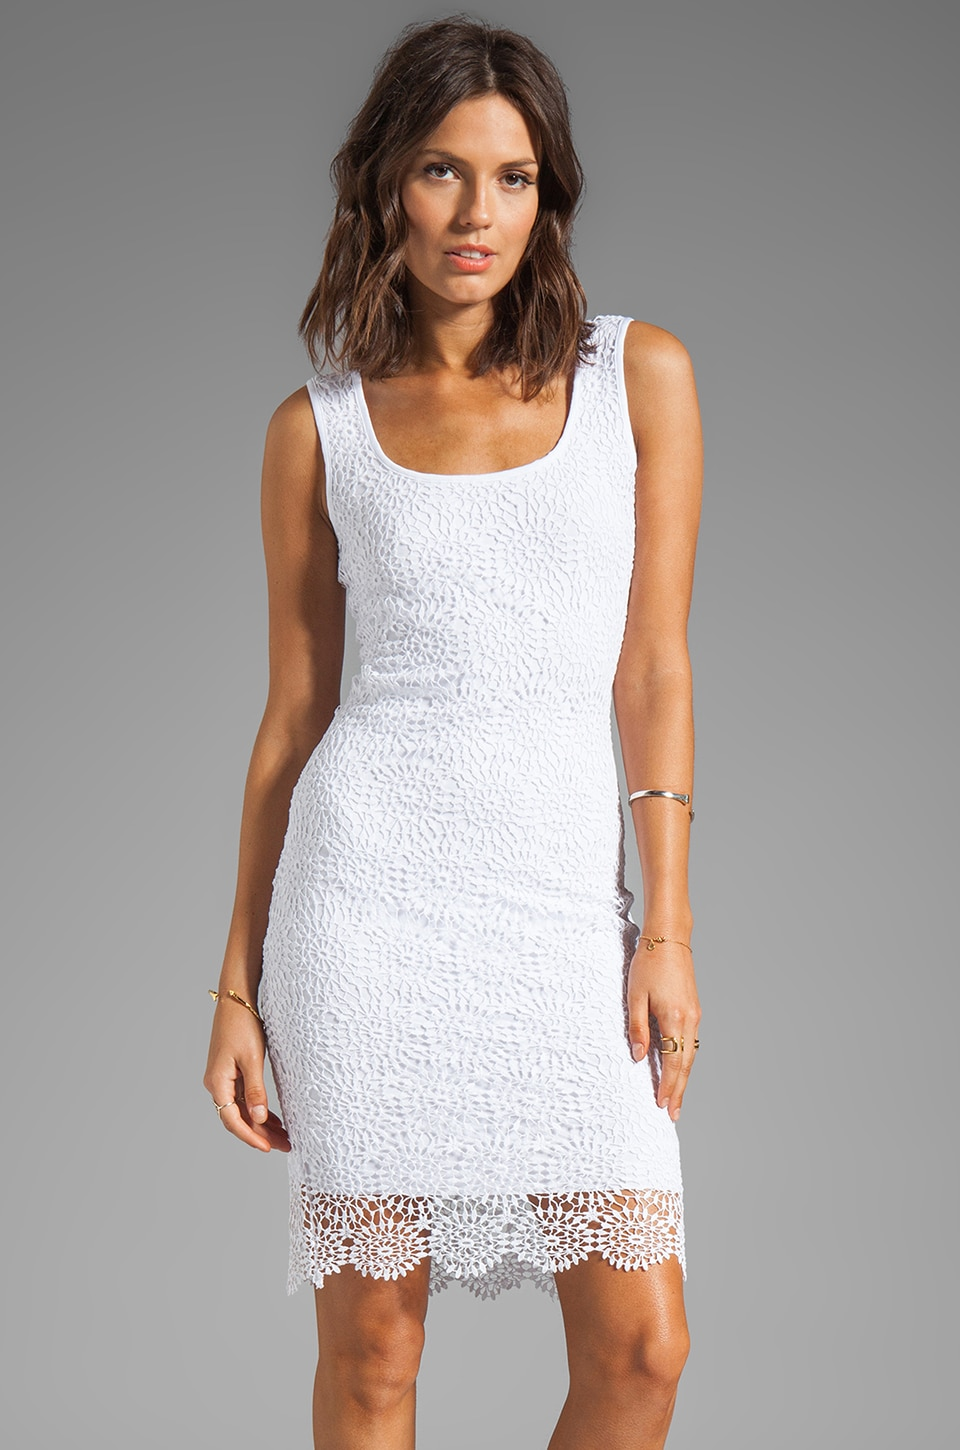 Bailey 44 Desert Dress in White